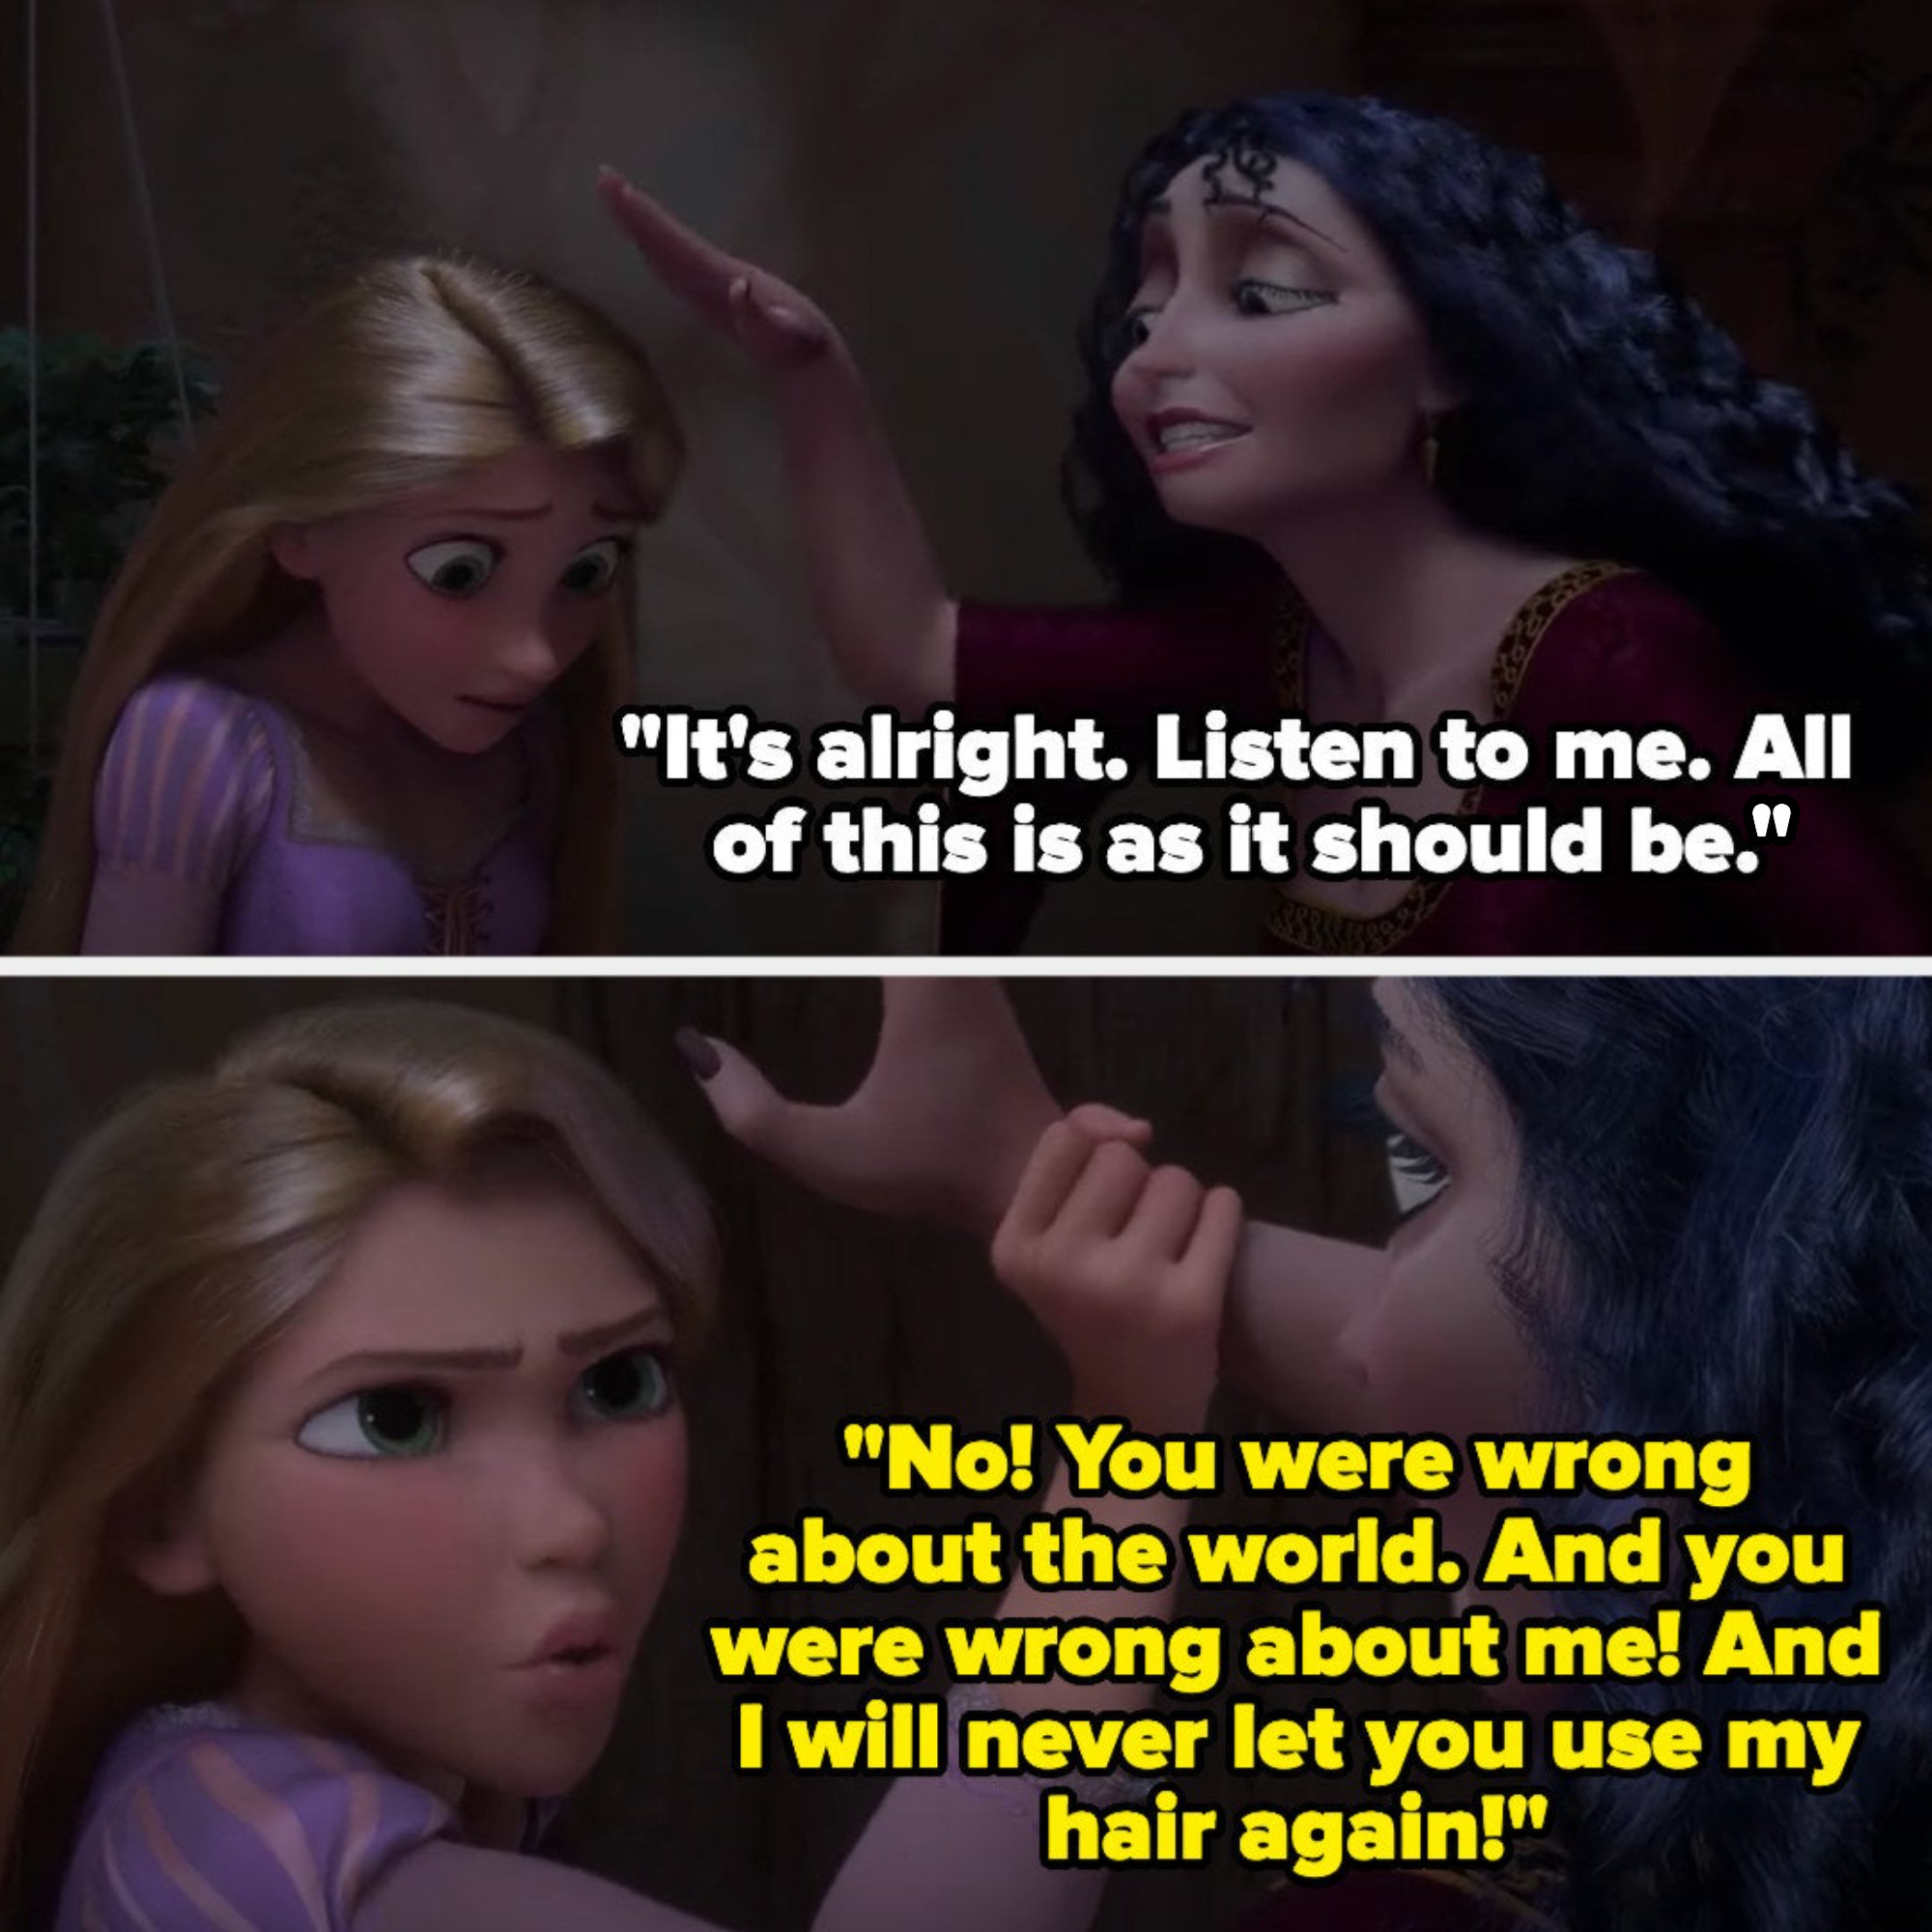 Mother Gothel says everything is fine, then goes to touch Rapunzel's hair — Rapunzel grabs her hand and says Gothel was wrong about the world and her, and that she'll never let Gothel use her hair again